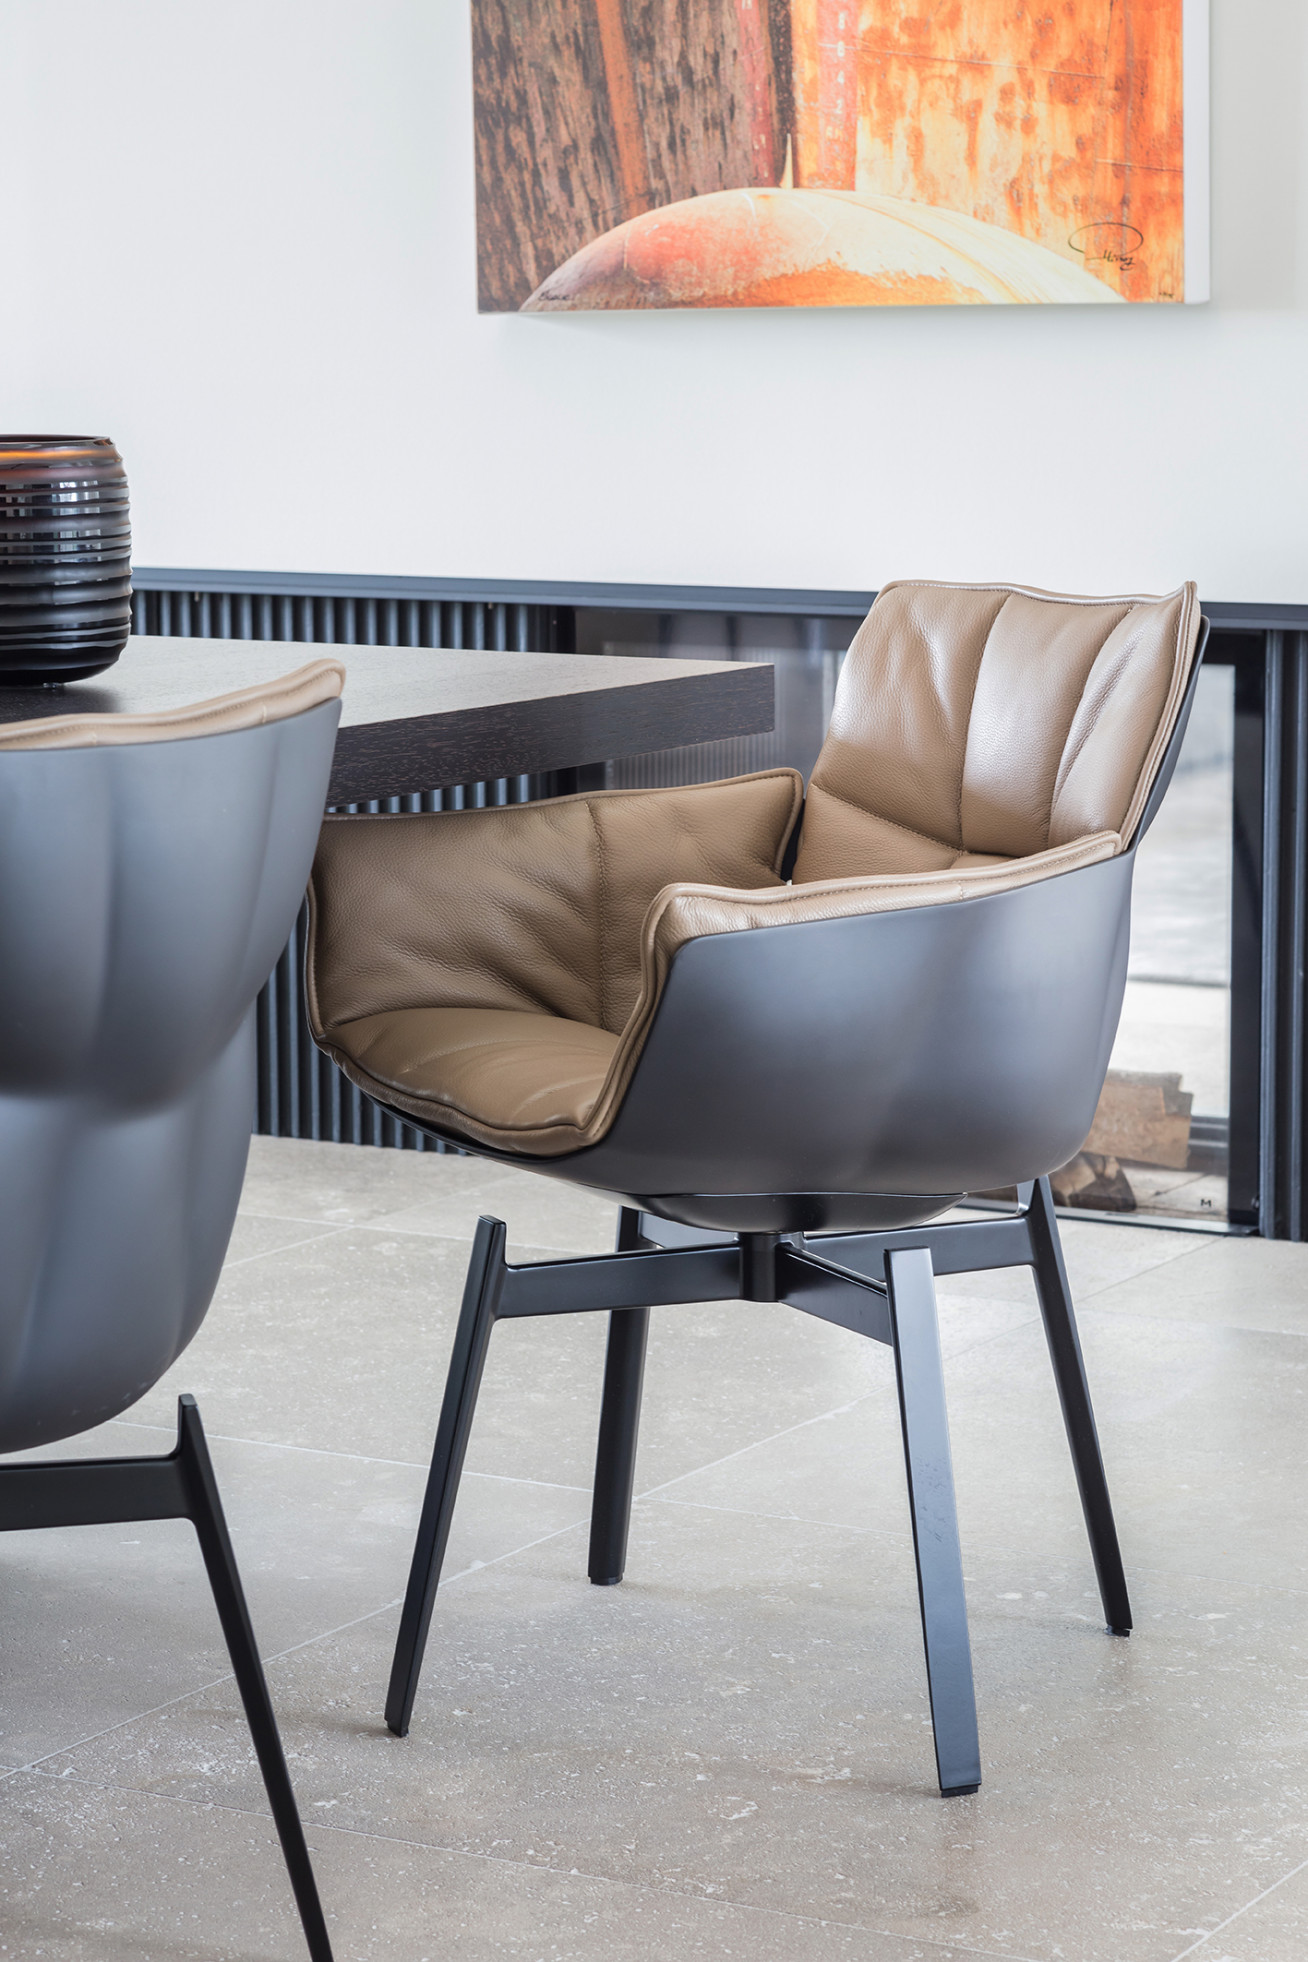 Indulging design   Design classics of B&B Italia, Walter Knoll and Baxter furnish this...